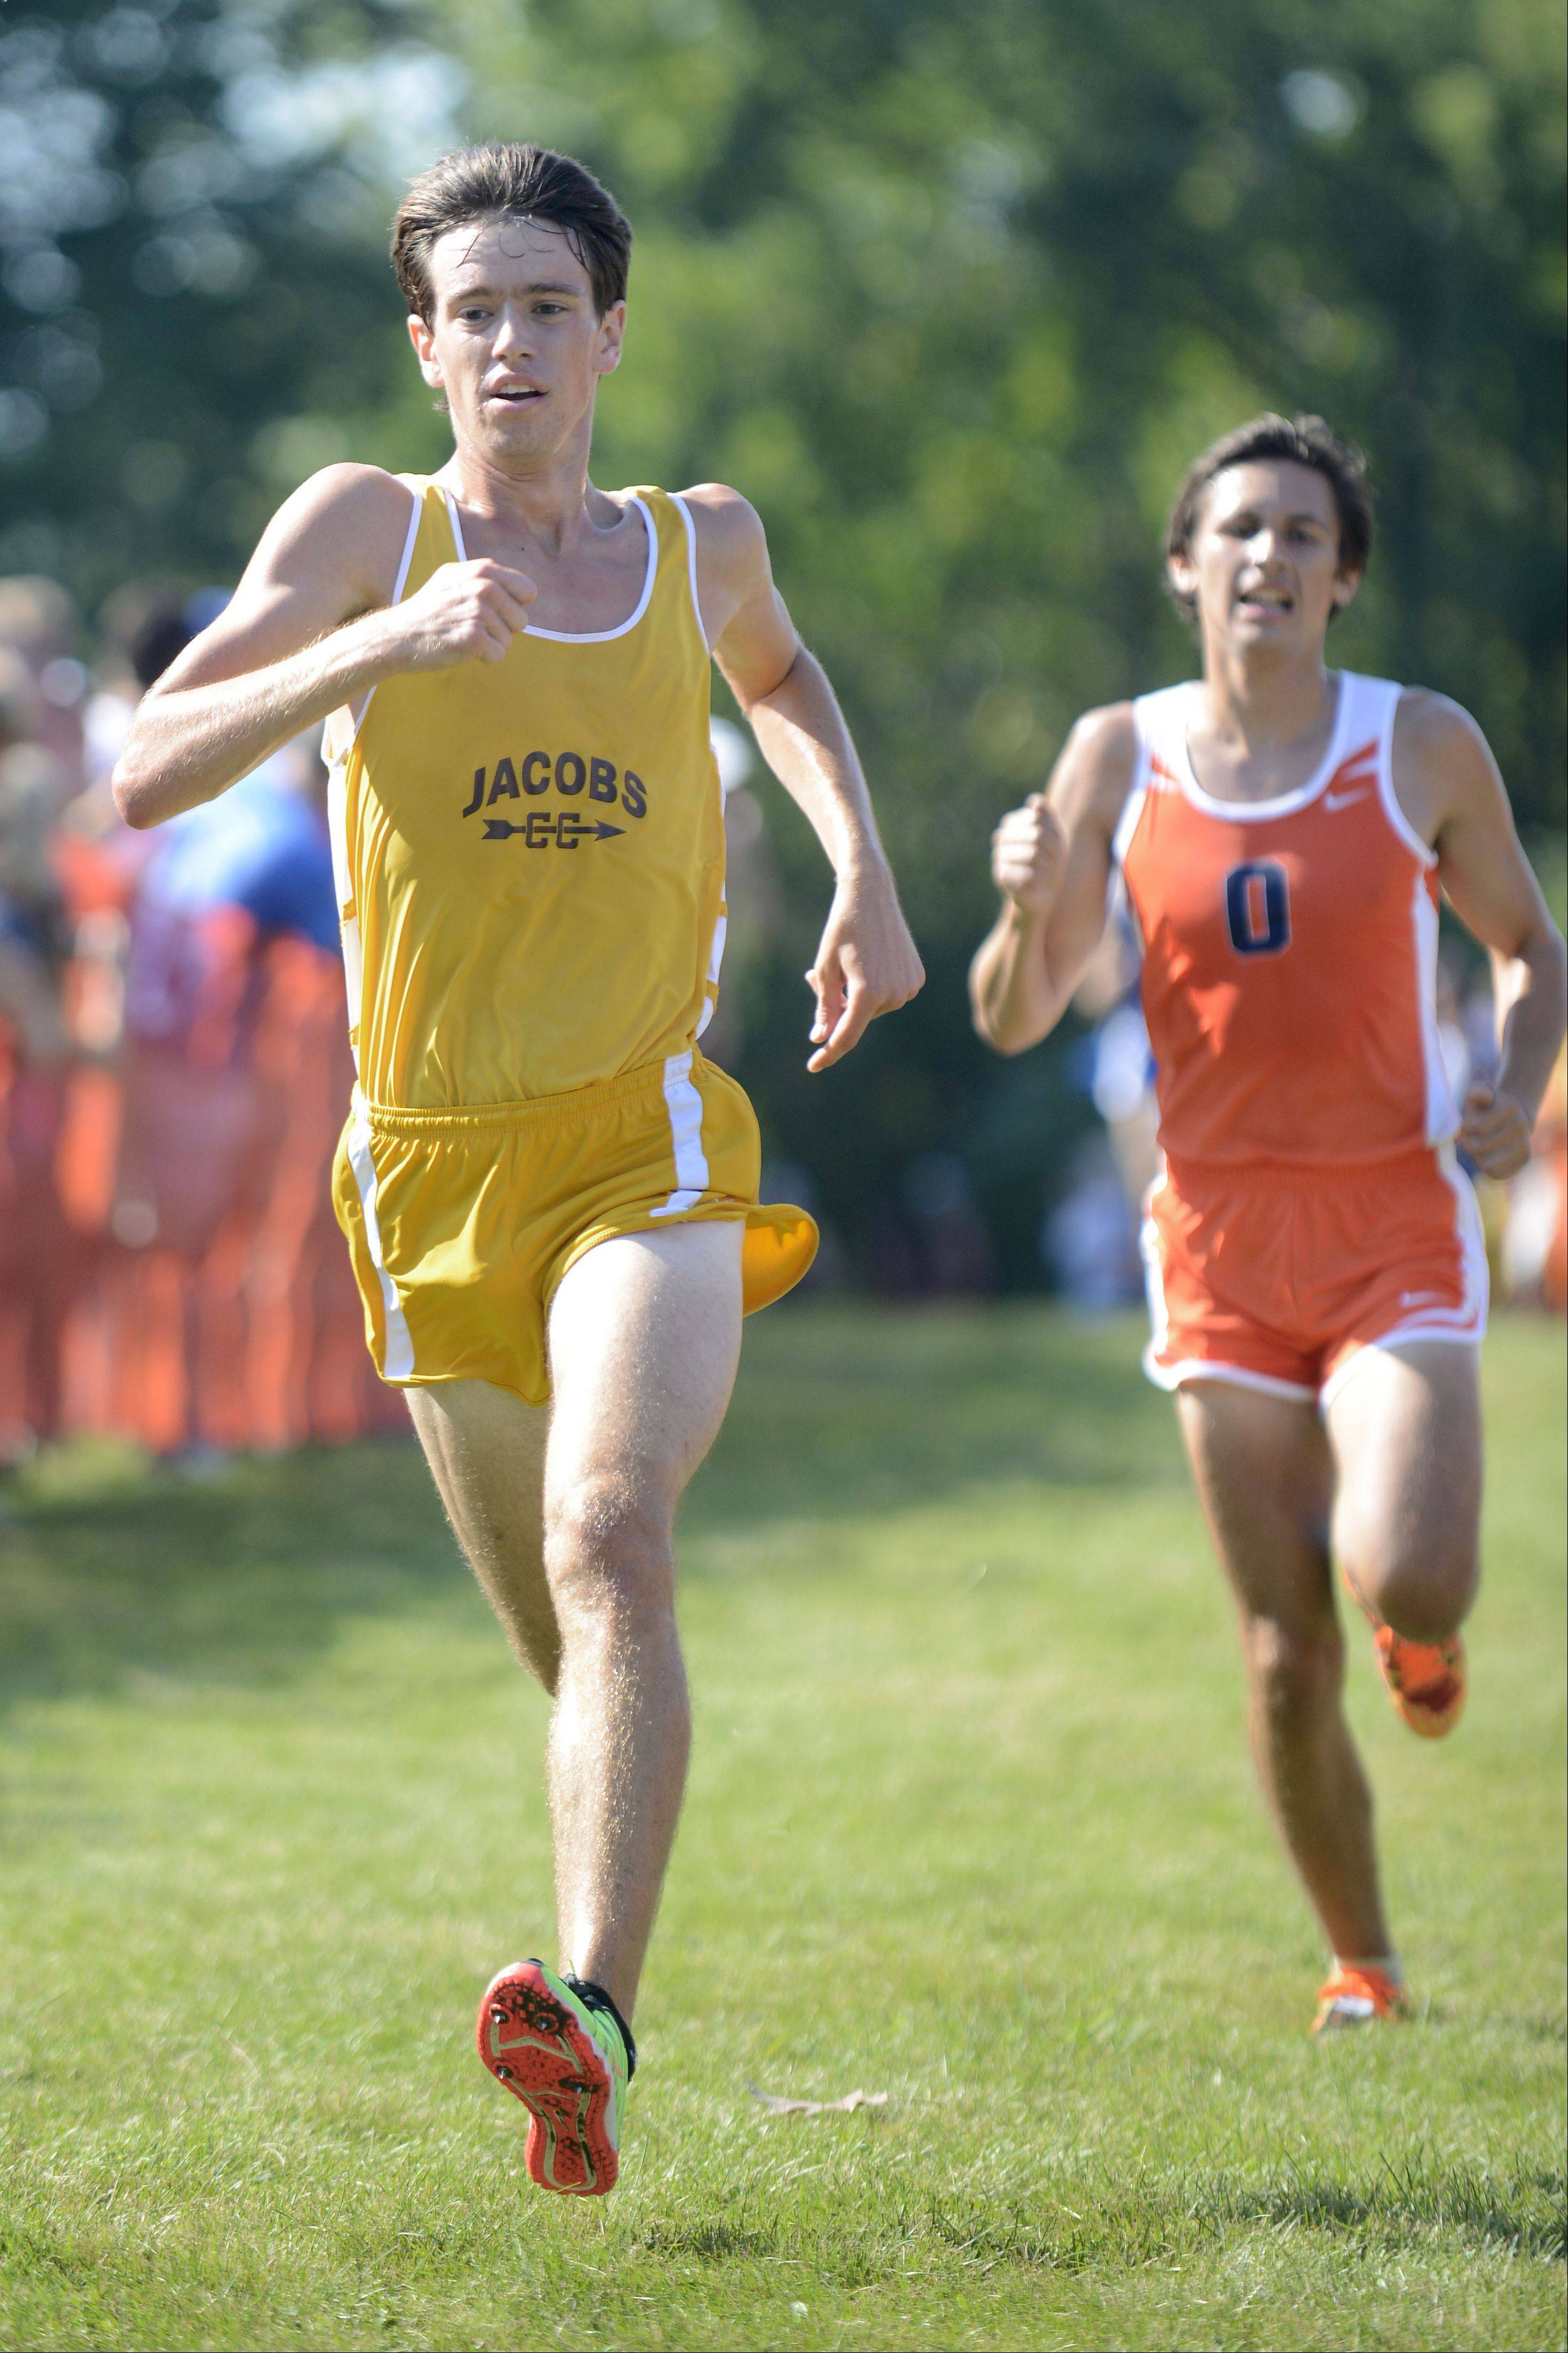 Jacobs' Matt Johnson flies to the finish line in the meet at Leroy Oakes Forest Preserve in St. Charles on Saturday, September 7.